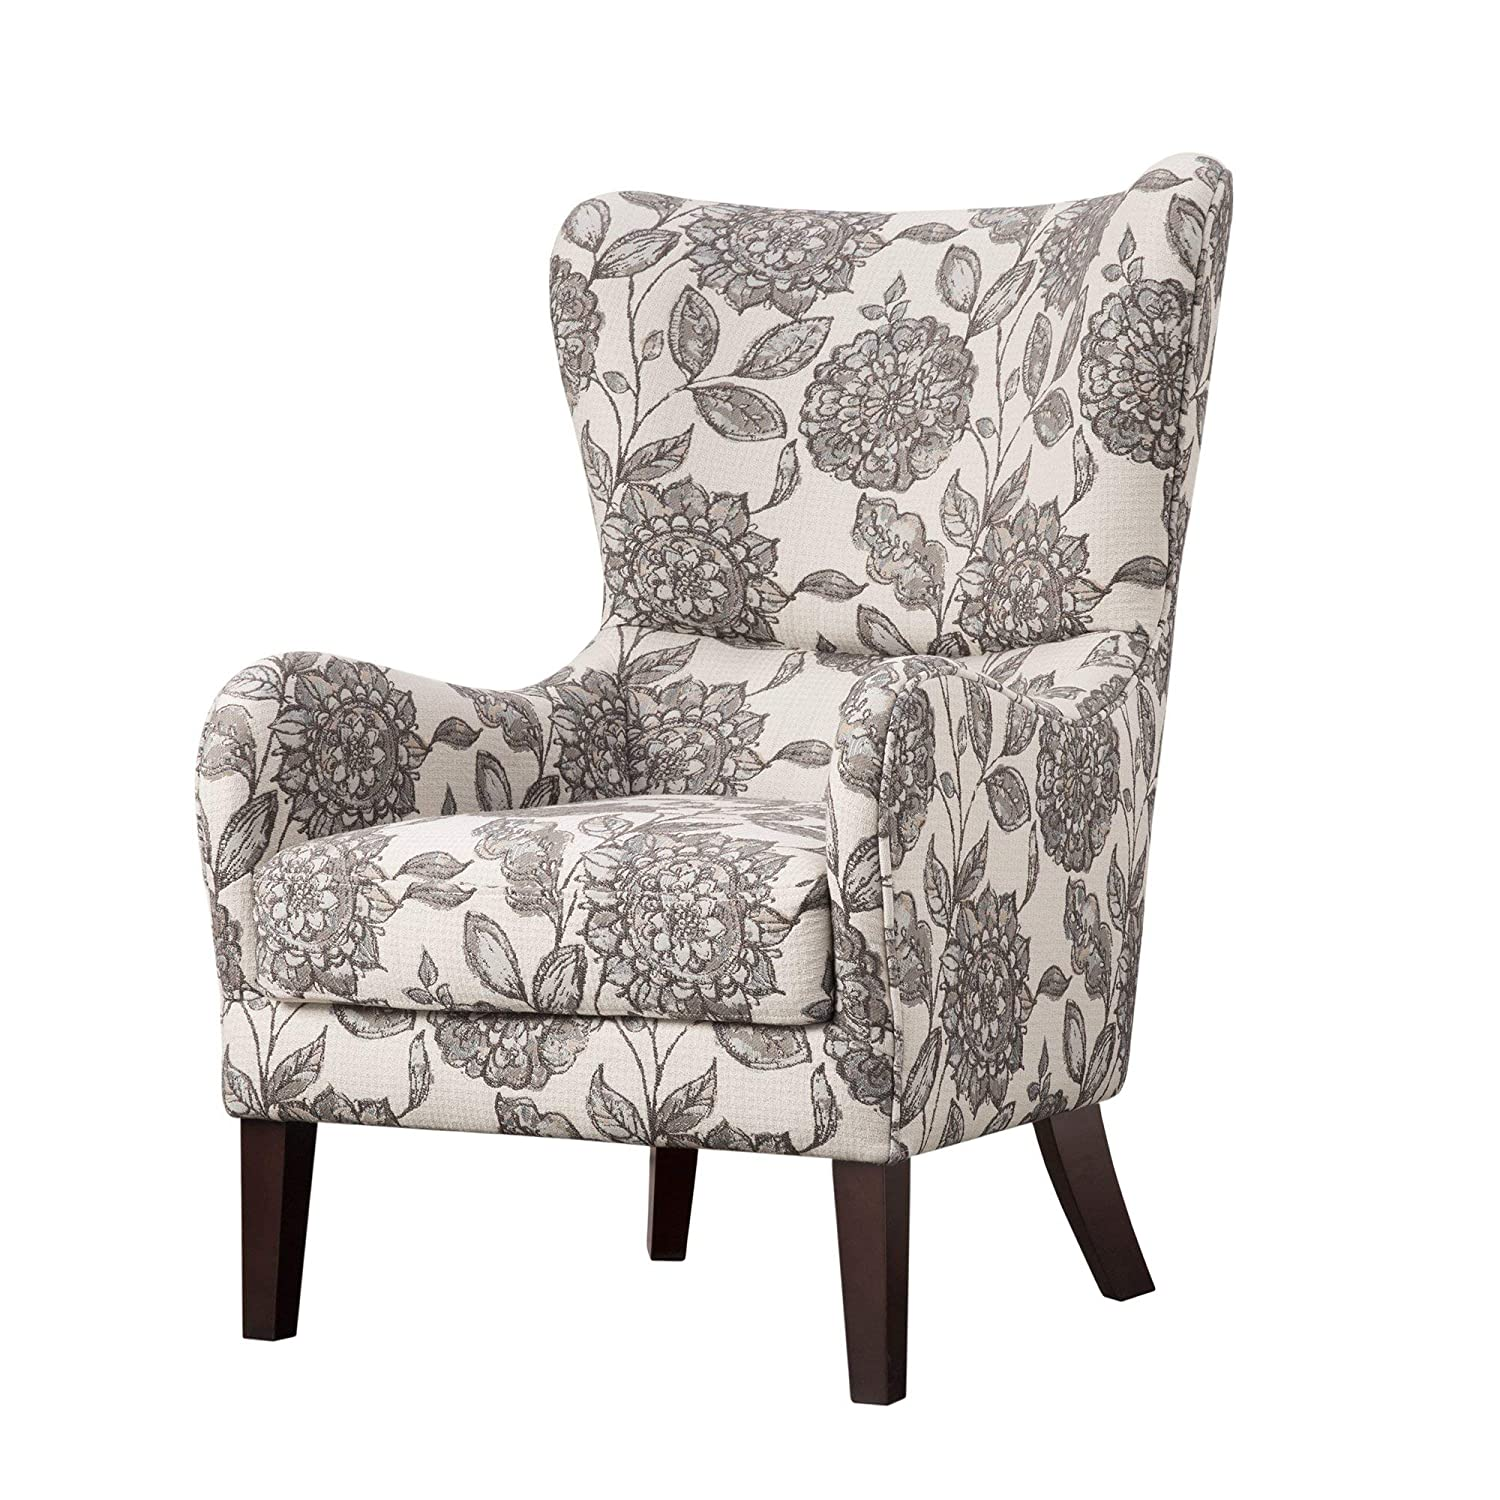 Madison park fpf18 0428 arianna accent hardwood faux linen modern contemporary style living room sofa furniture swoop wing arm bedroom chairs seats deep